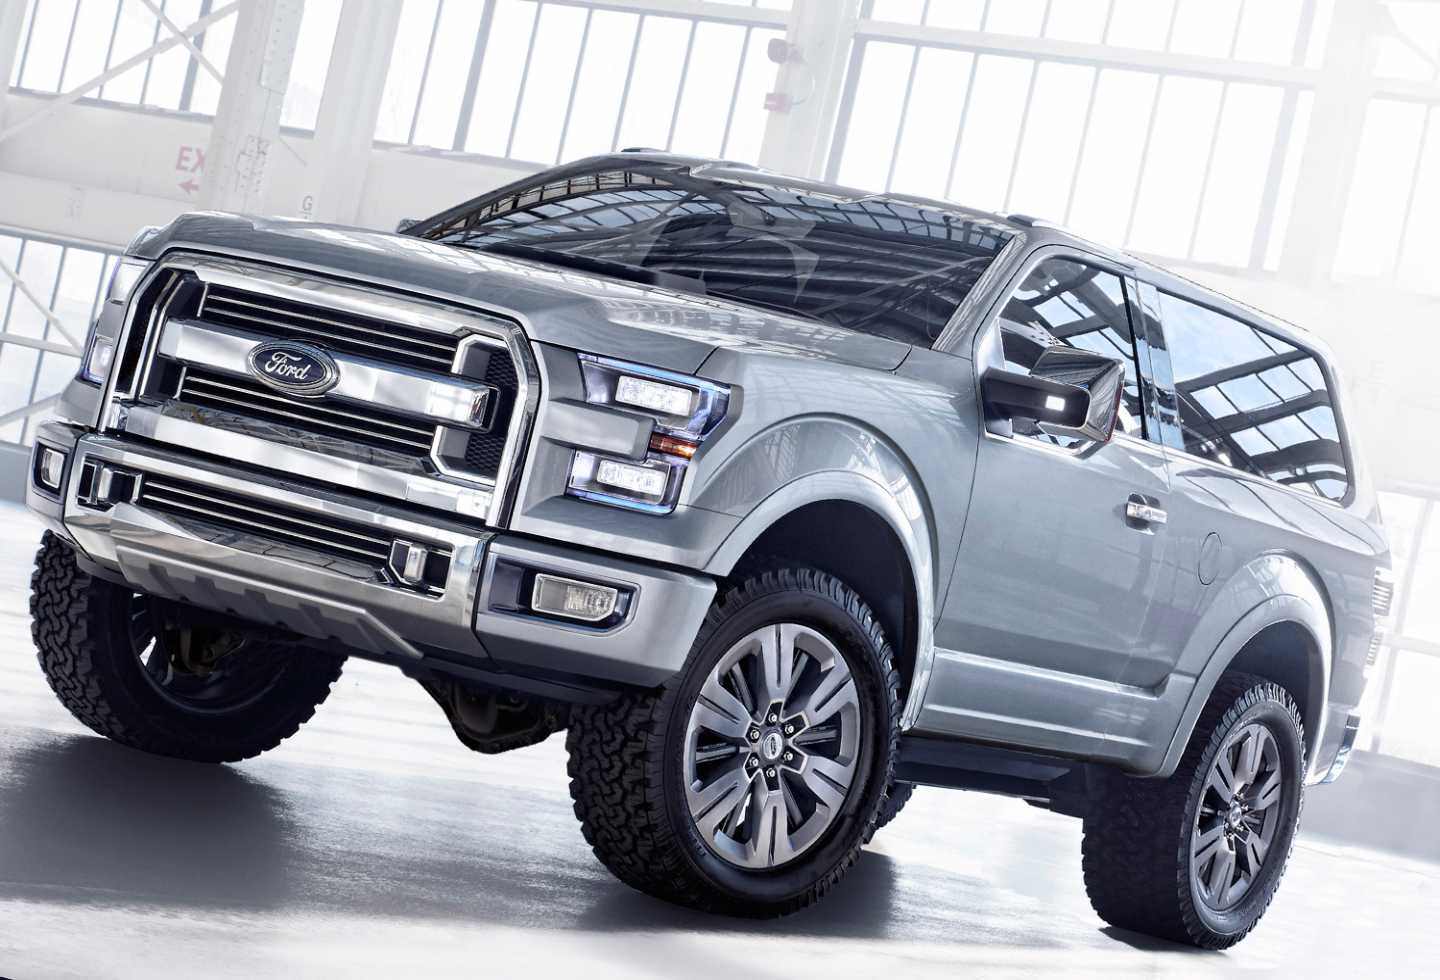 52 The Best 2020 Ford Svt Bronco Raptor Overview